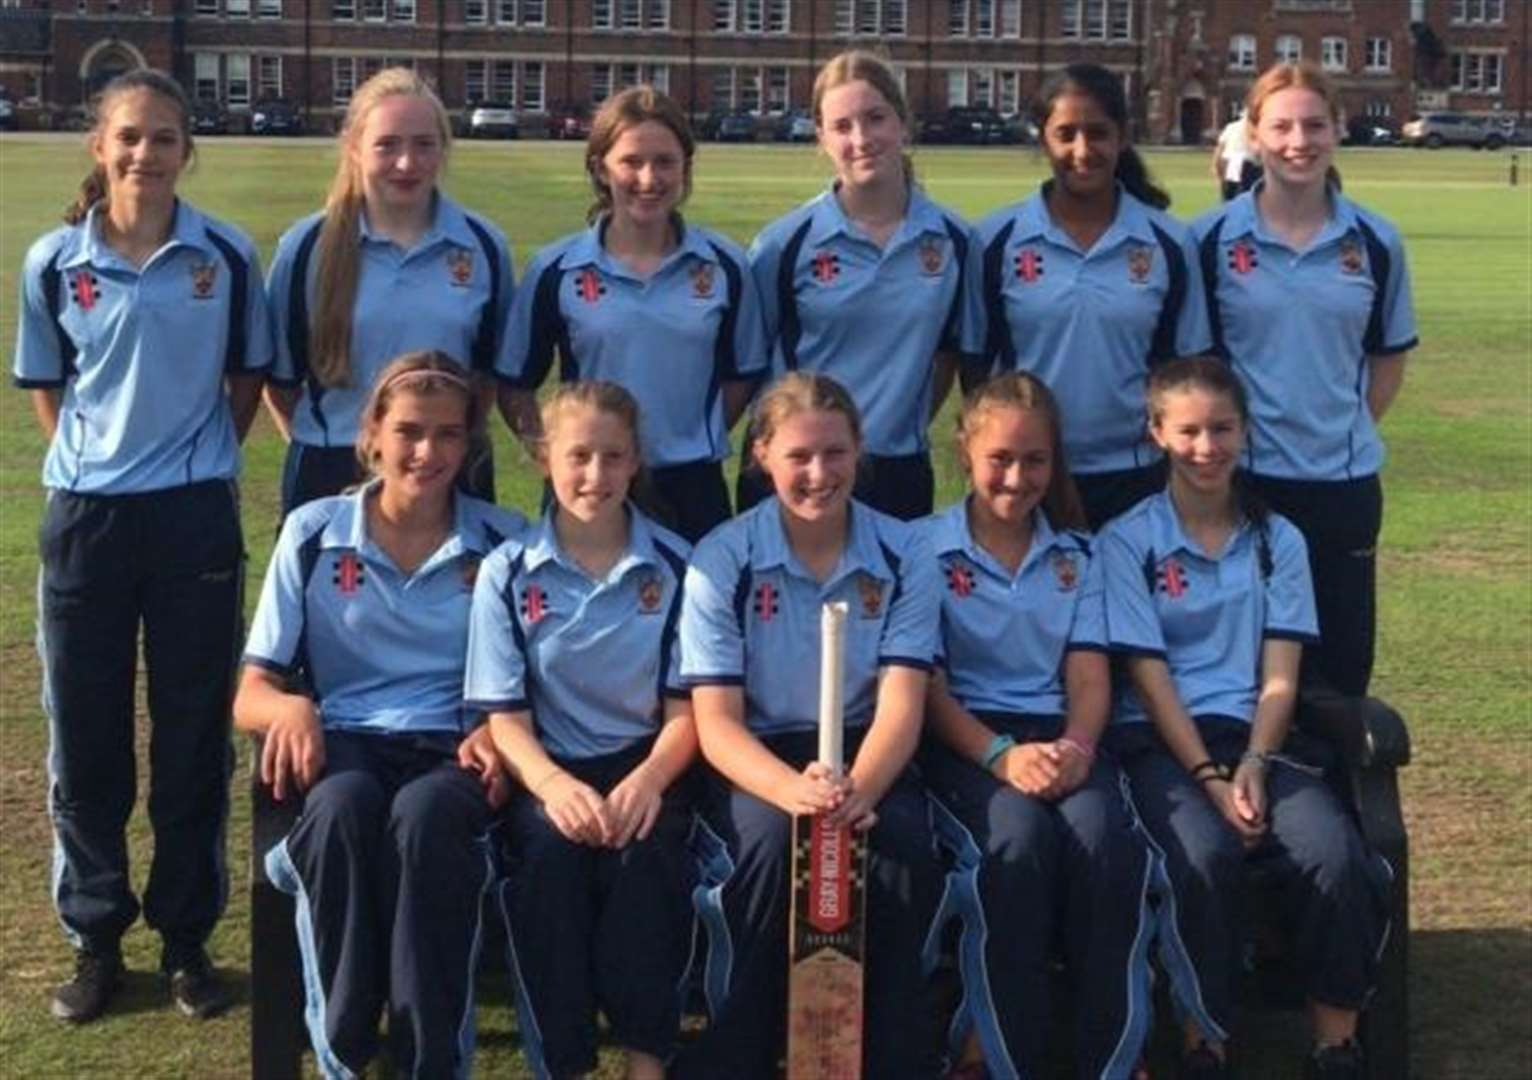 Girls' cricket team are pride of The Leys School after national finals achievements